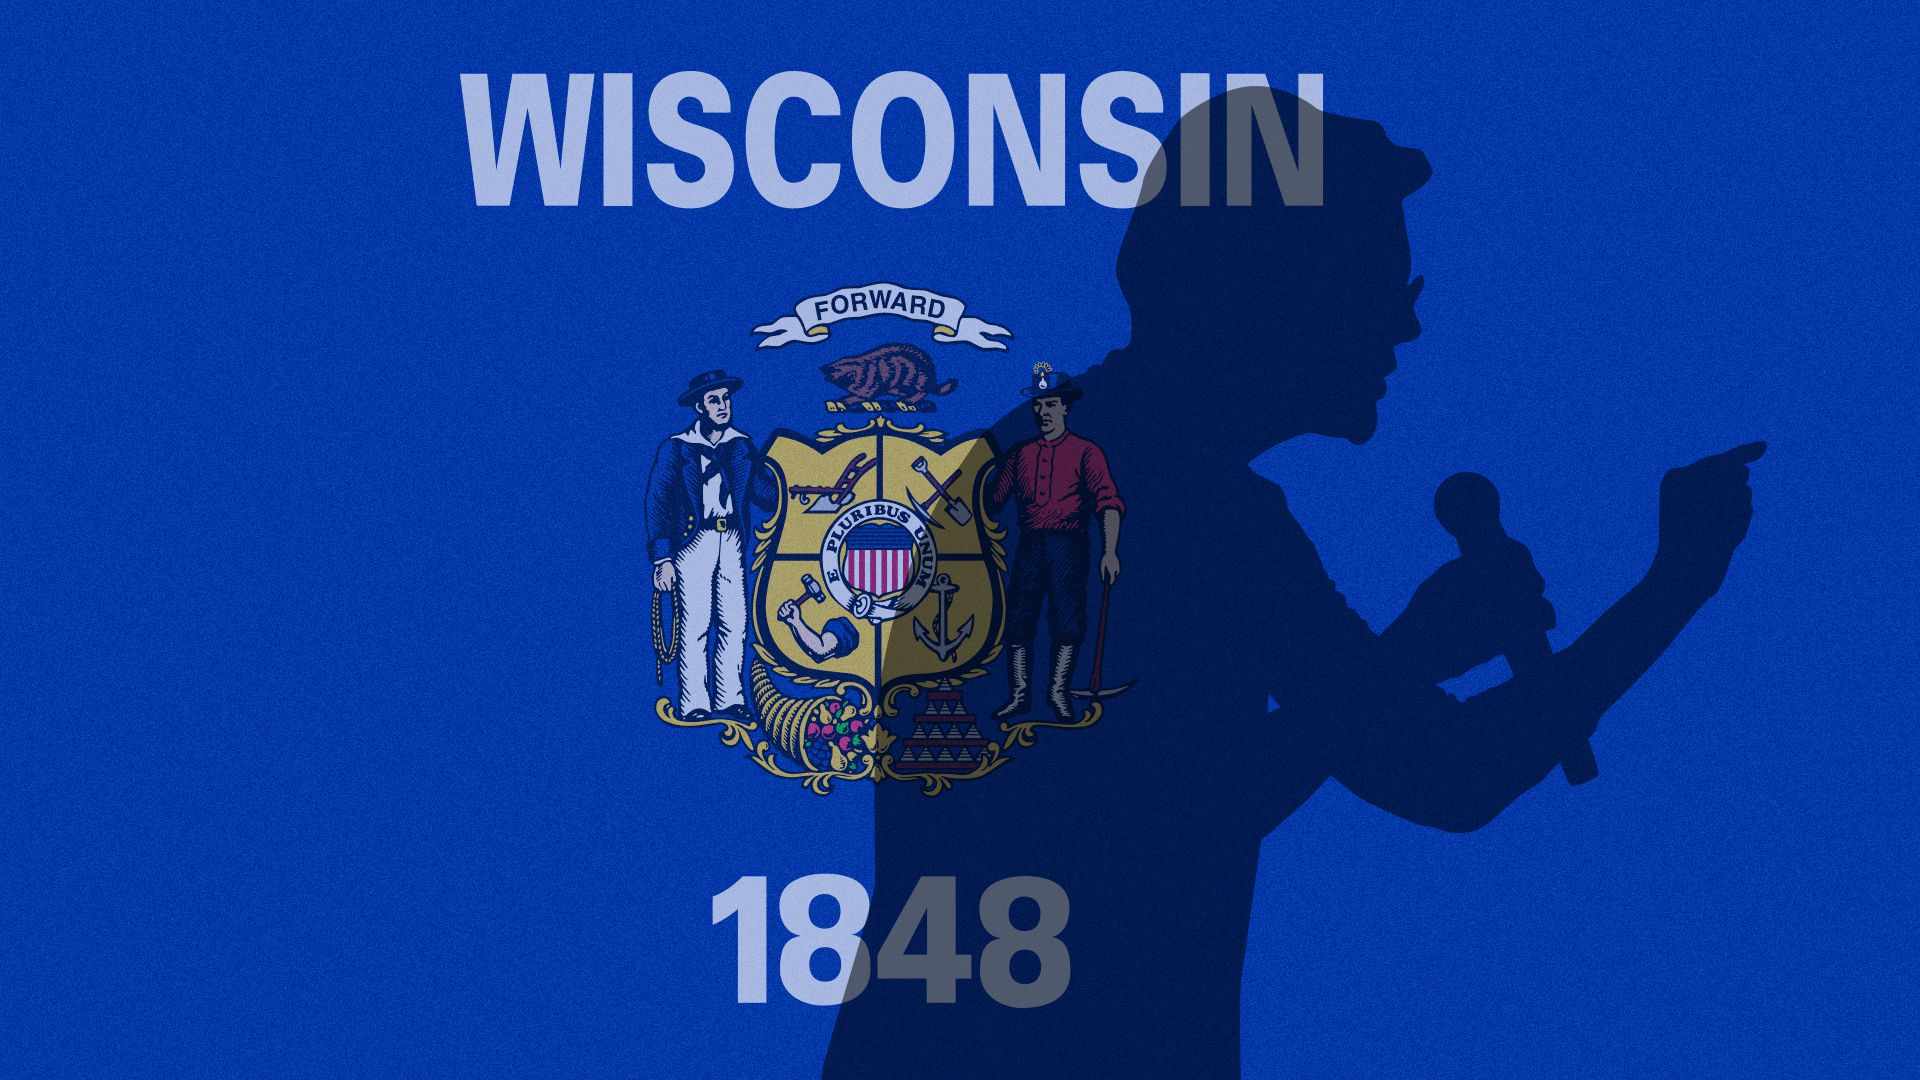 Illustration of Elizabeth Warren's shadow casting over the state flag of Wisconsin.